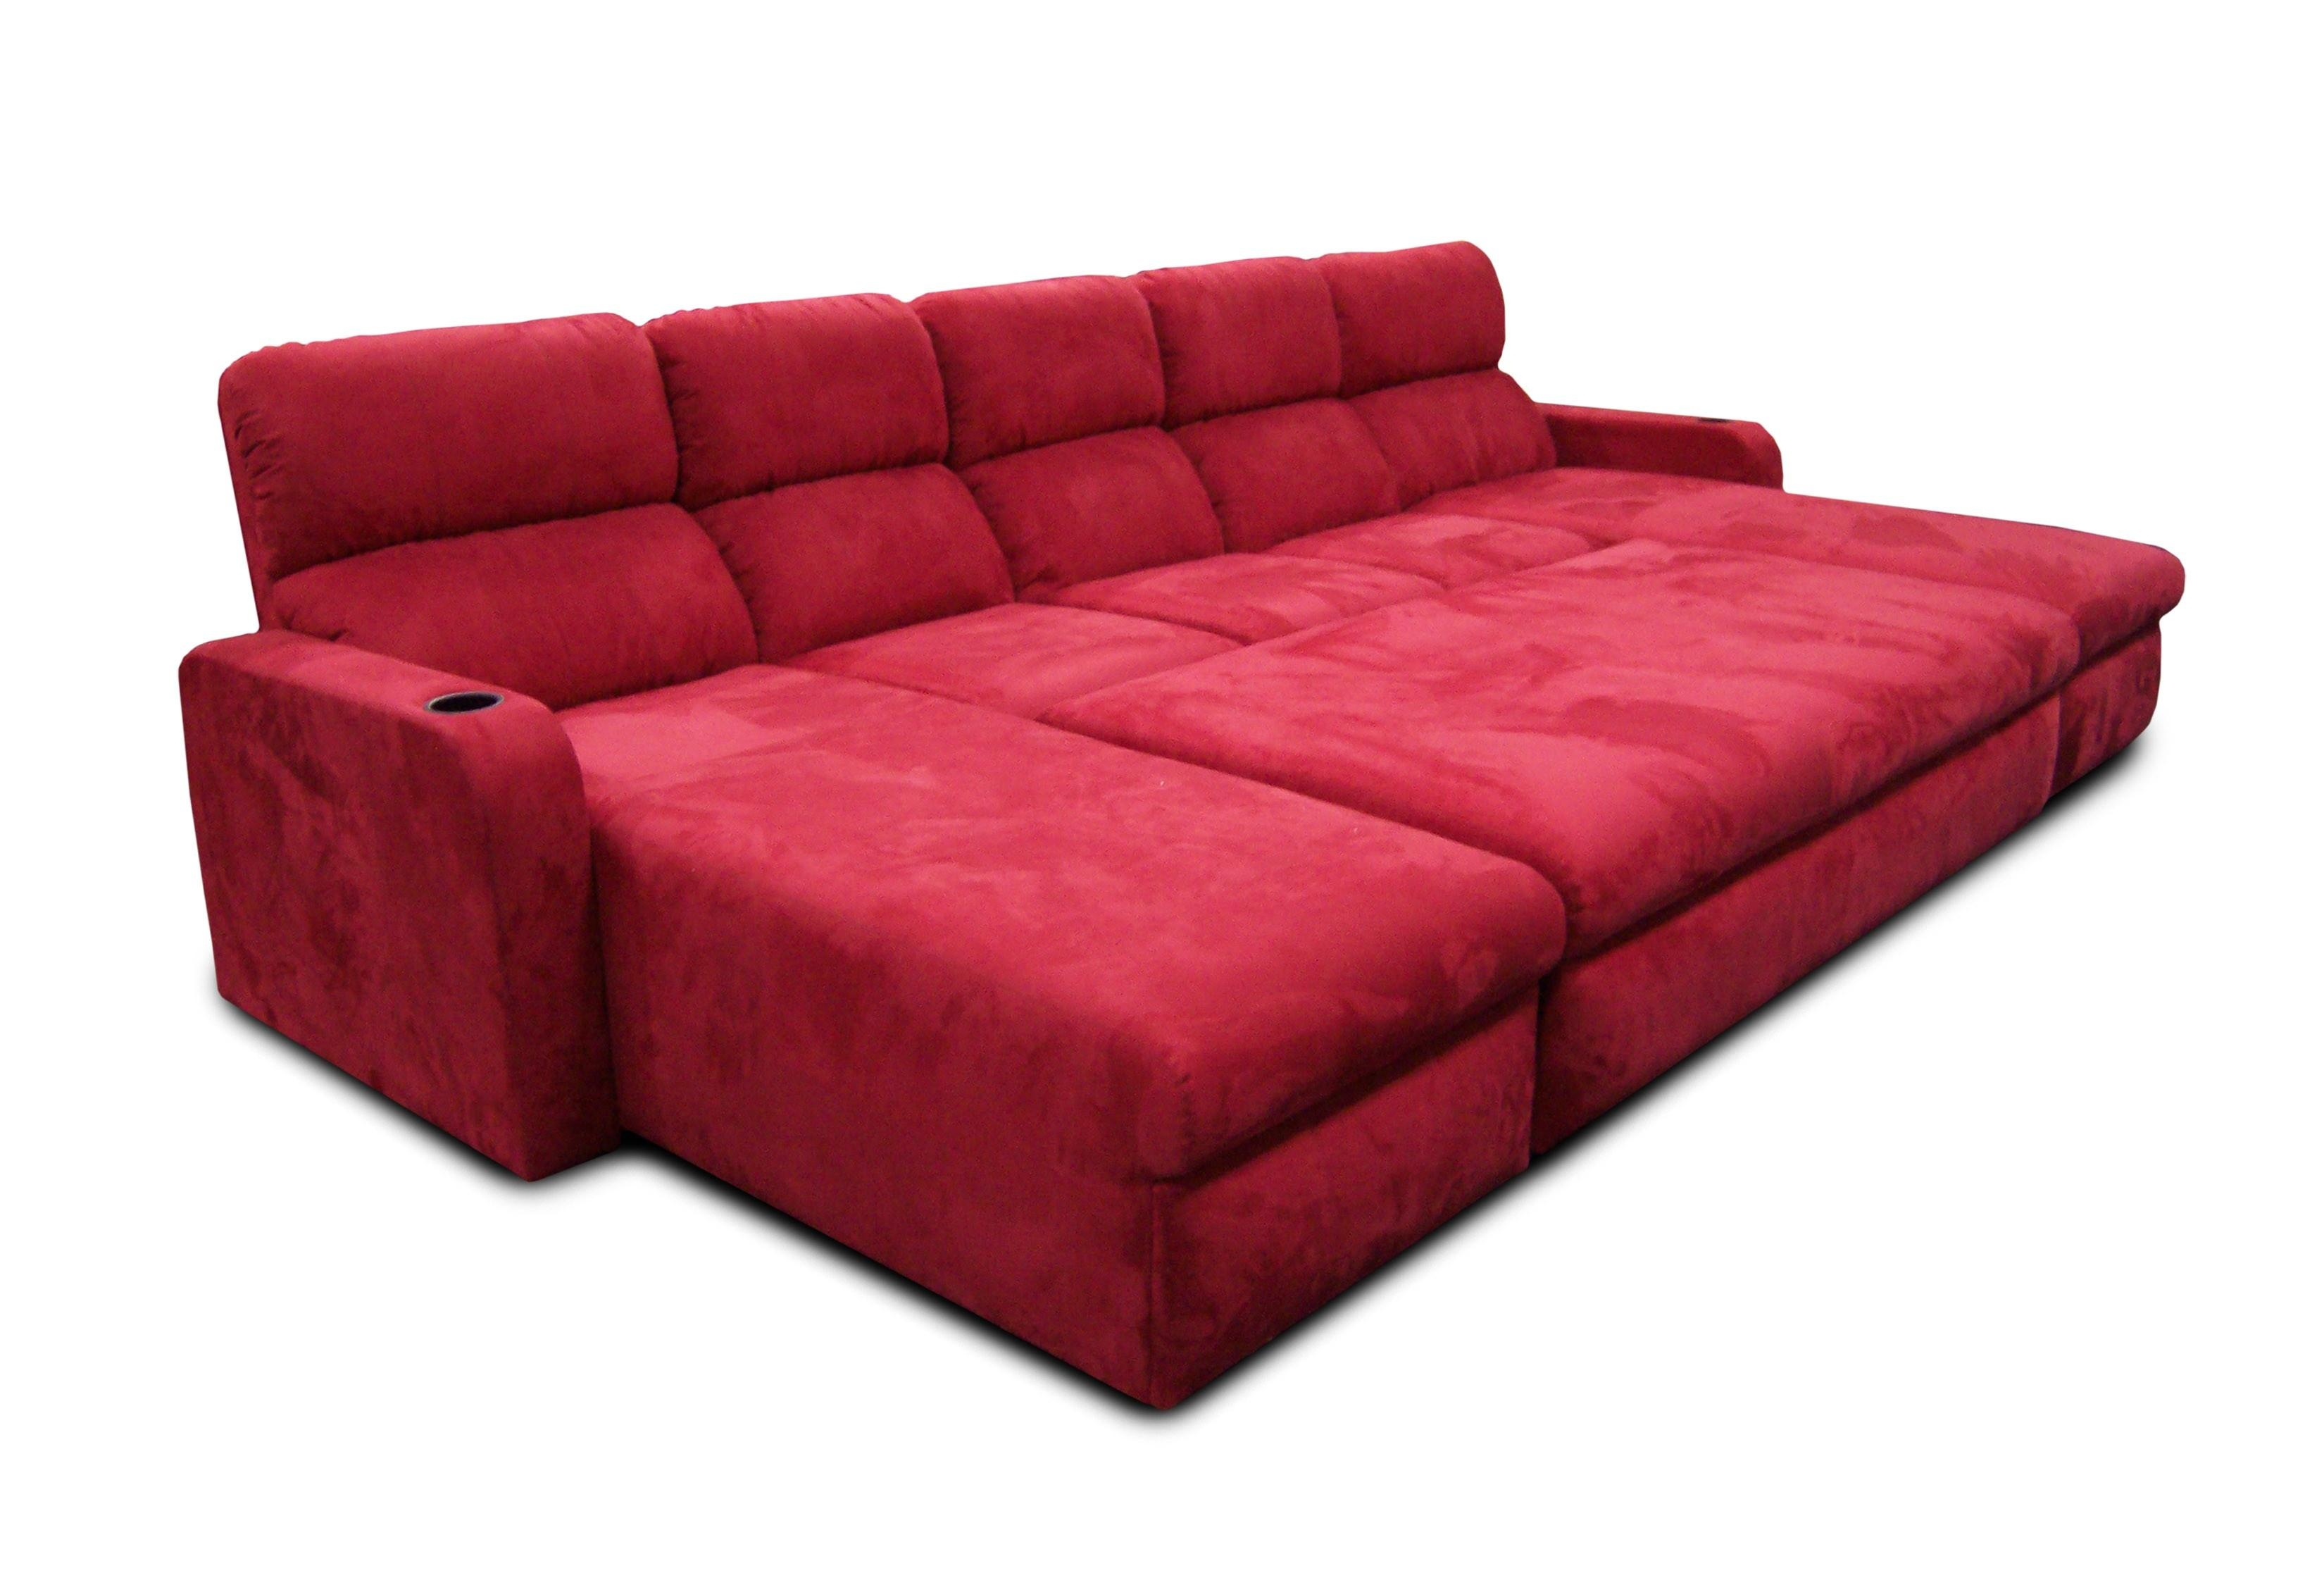 Bedroom : Most Comfortable Sofa Beds Must Be Owned In 2018 For Giant Sofa Beds (Image 5 of 20)